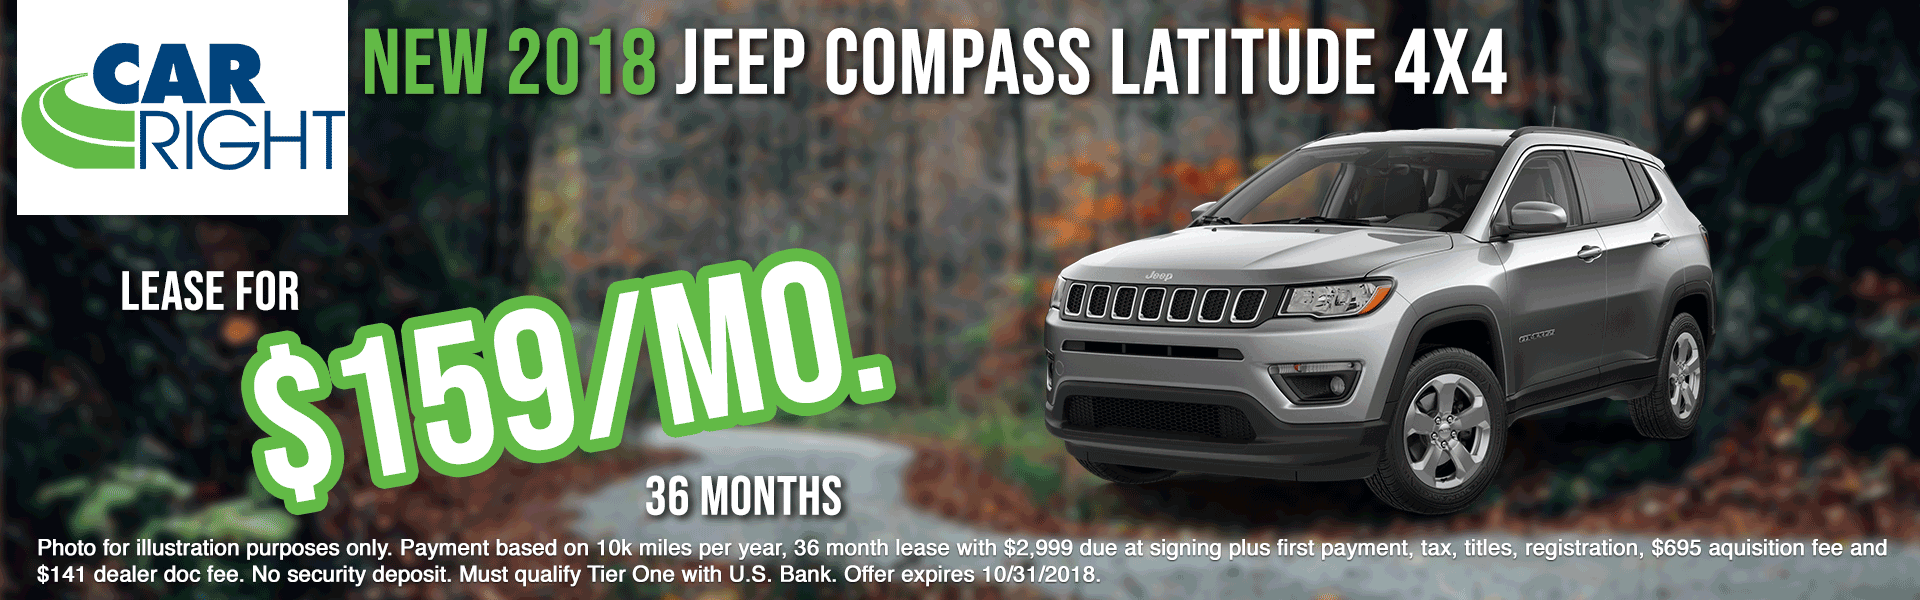 carright new vehicle specials carright specials chrysler specials dodge specials jeep specials ram specials lease specials moon township buy your car right the right way to buy a car Z2775---2018-JEEP-COMPASS-LATITUDE-4X4-OCT